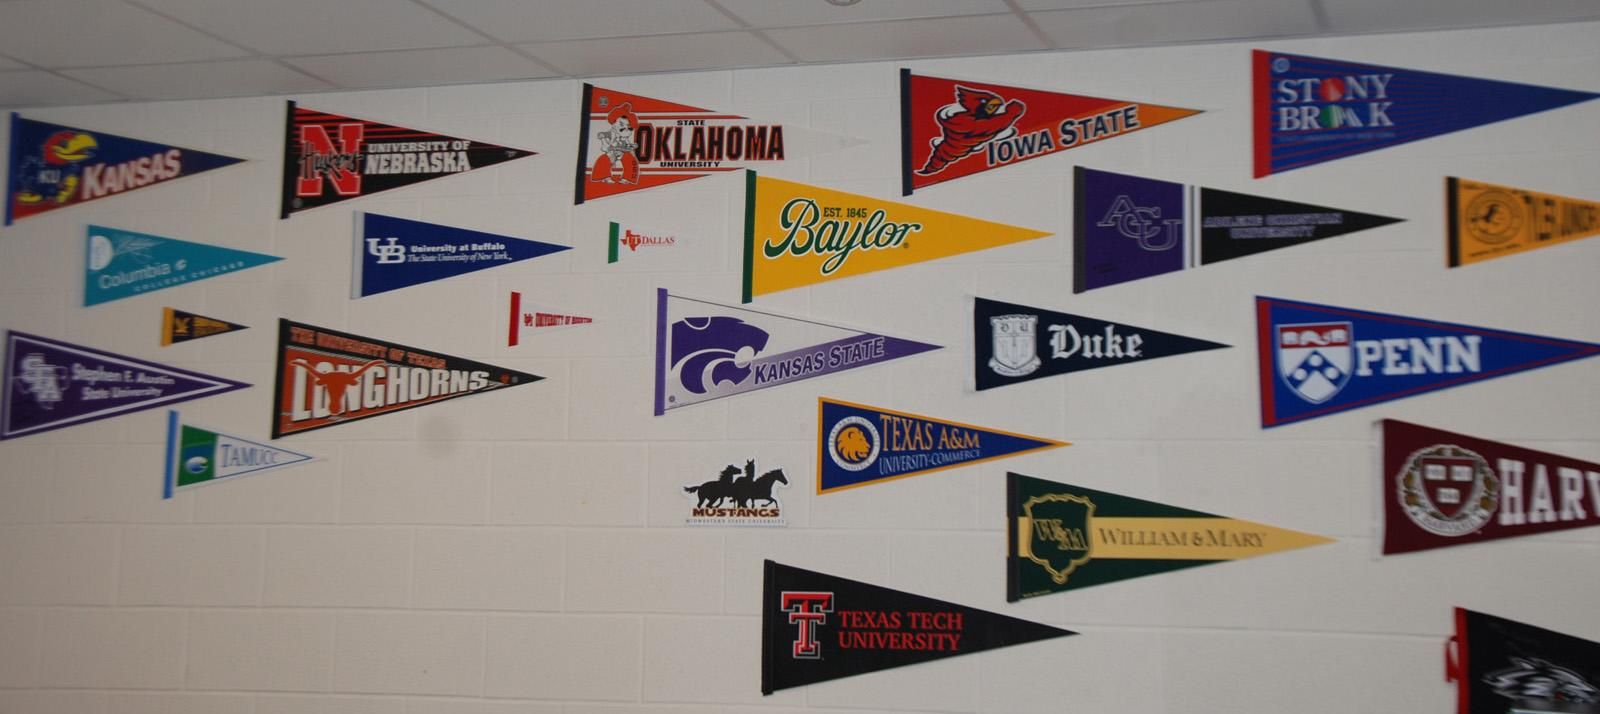 In the next few weeks, several college representatives will be visiting campus.  Among those scheduled to visit are Texas Tech, the University of Oklahoma and the University of Georgia.